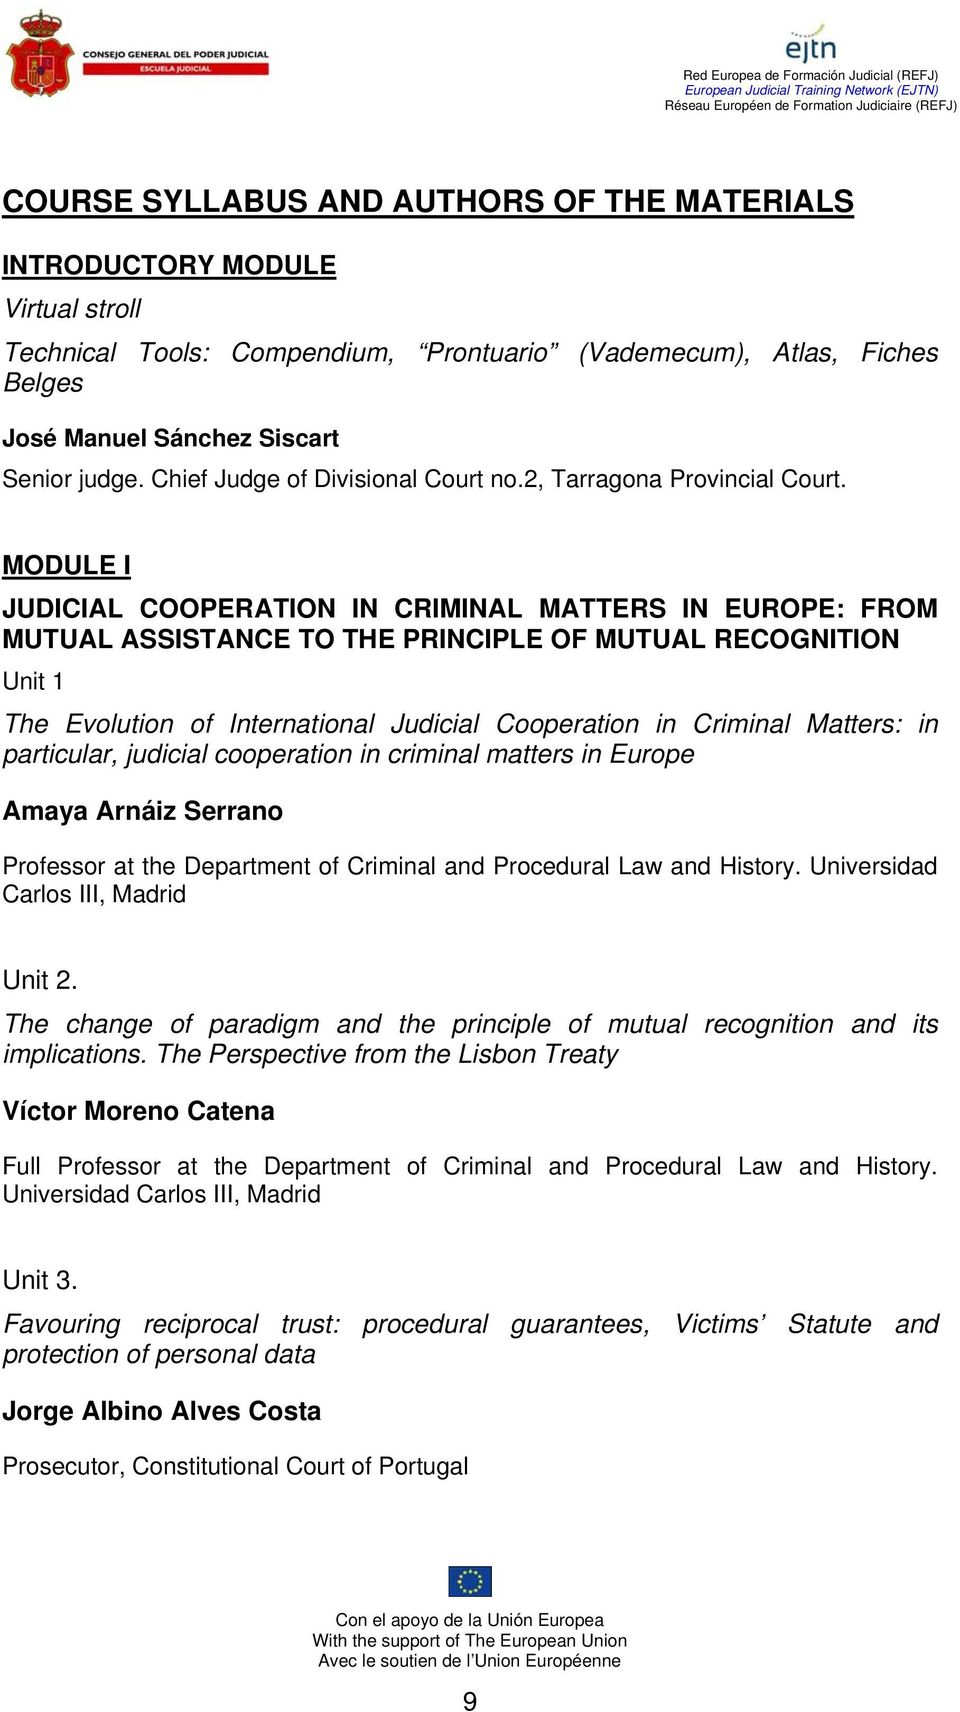 MODULE I JUDICIAL COOPERATION IN CRIMINAL MATTERS IN EUROPE: FROM MUTUAL ASSISTANCE TO THE PRINCIPLE OF MUTUAL RECOGNITION Unit 1 The Evolution of International Judicial Cooperation in Criminal